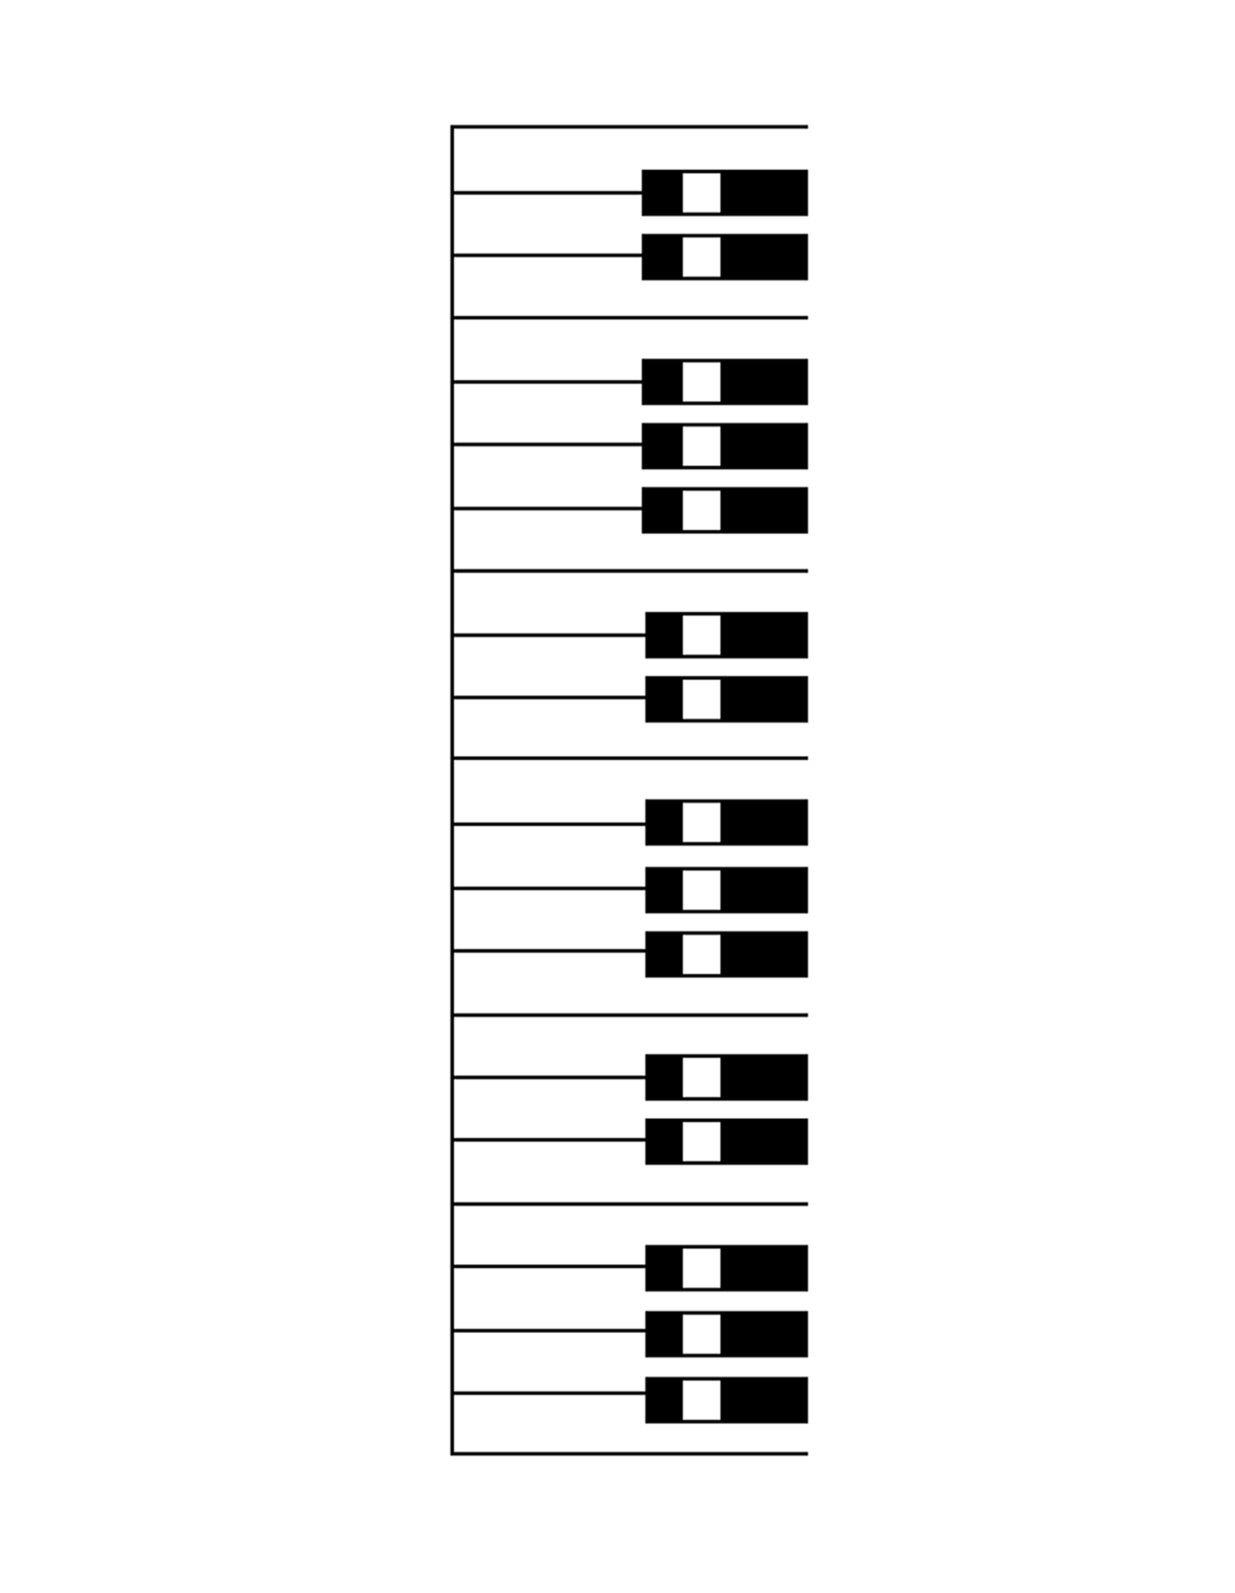 hight resolution of Blank Piano Keyboard Worksheet Clipart - Free to use Clip Art Resource -  ClipArt Best - ClipArt Best